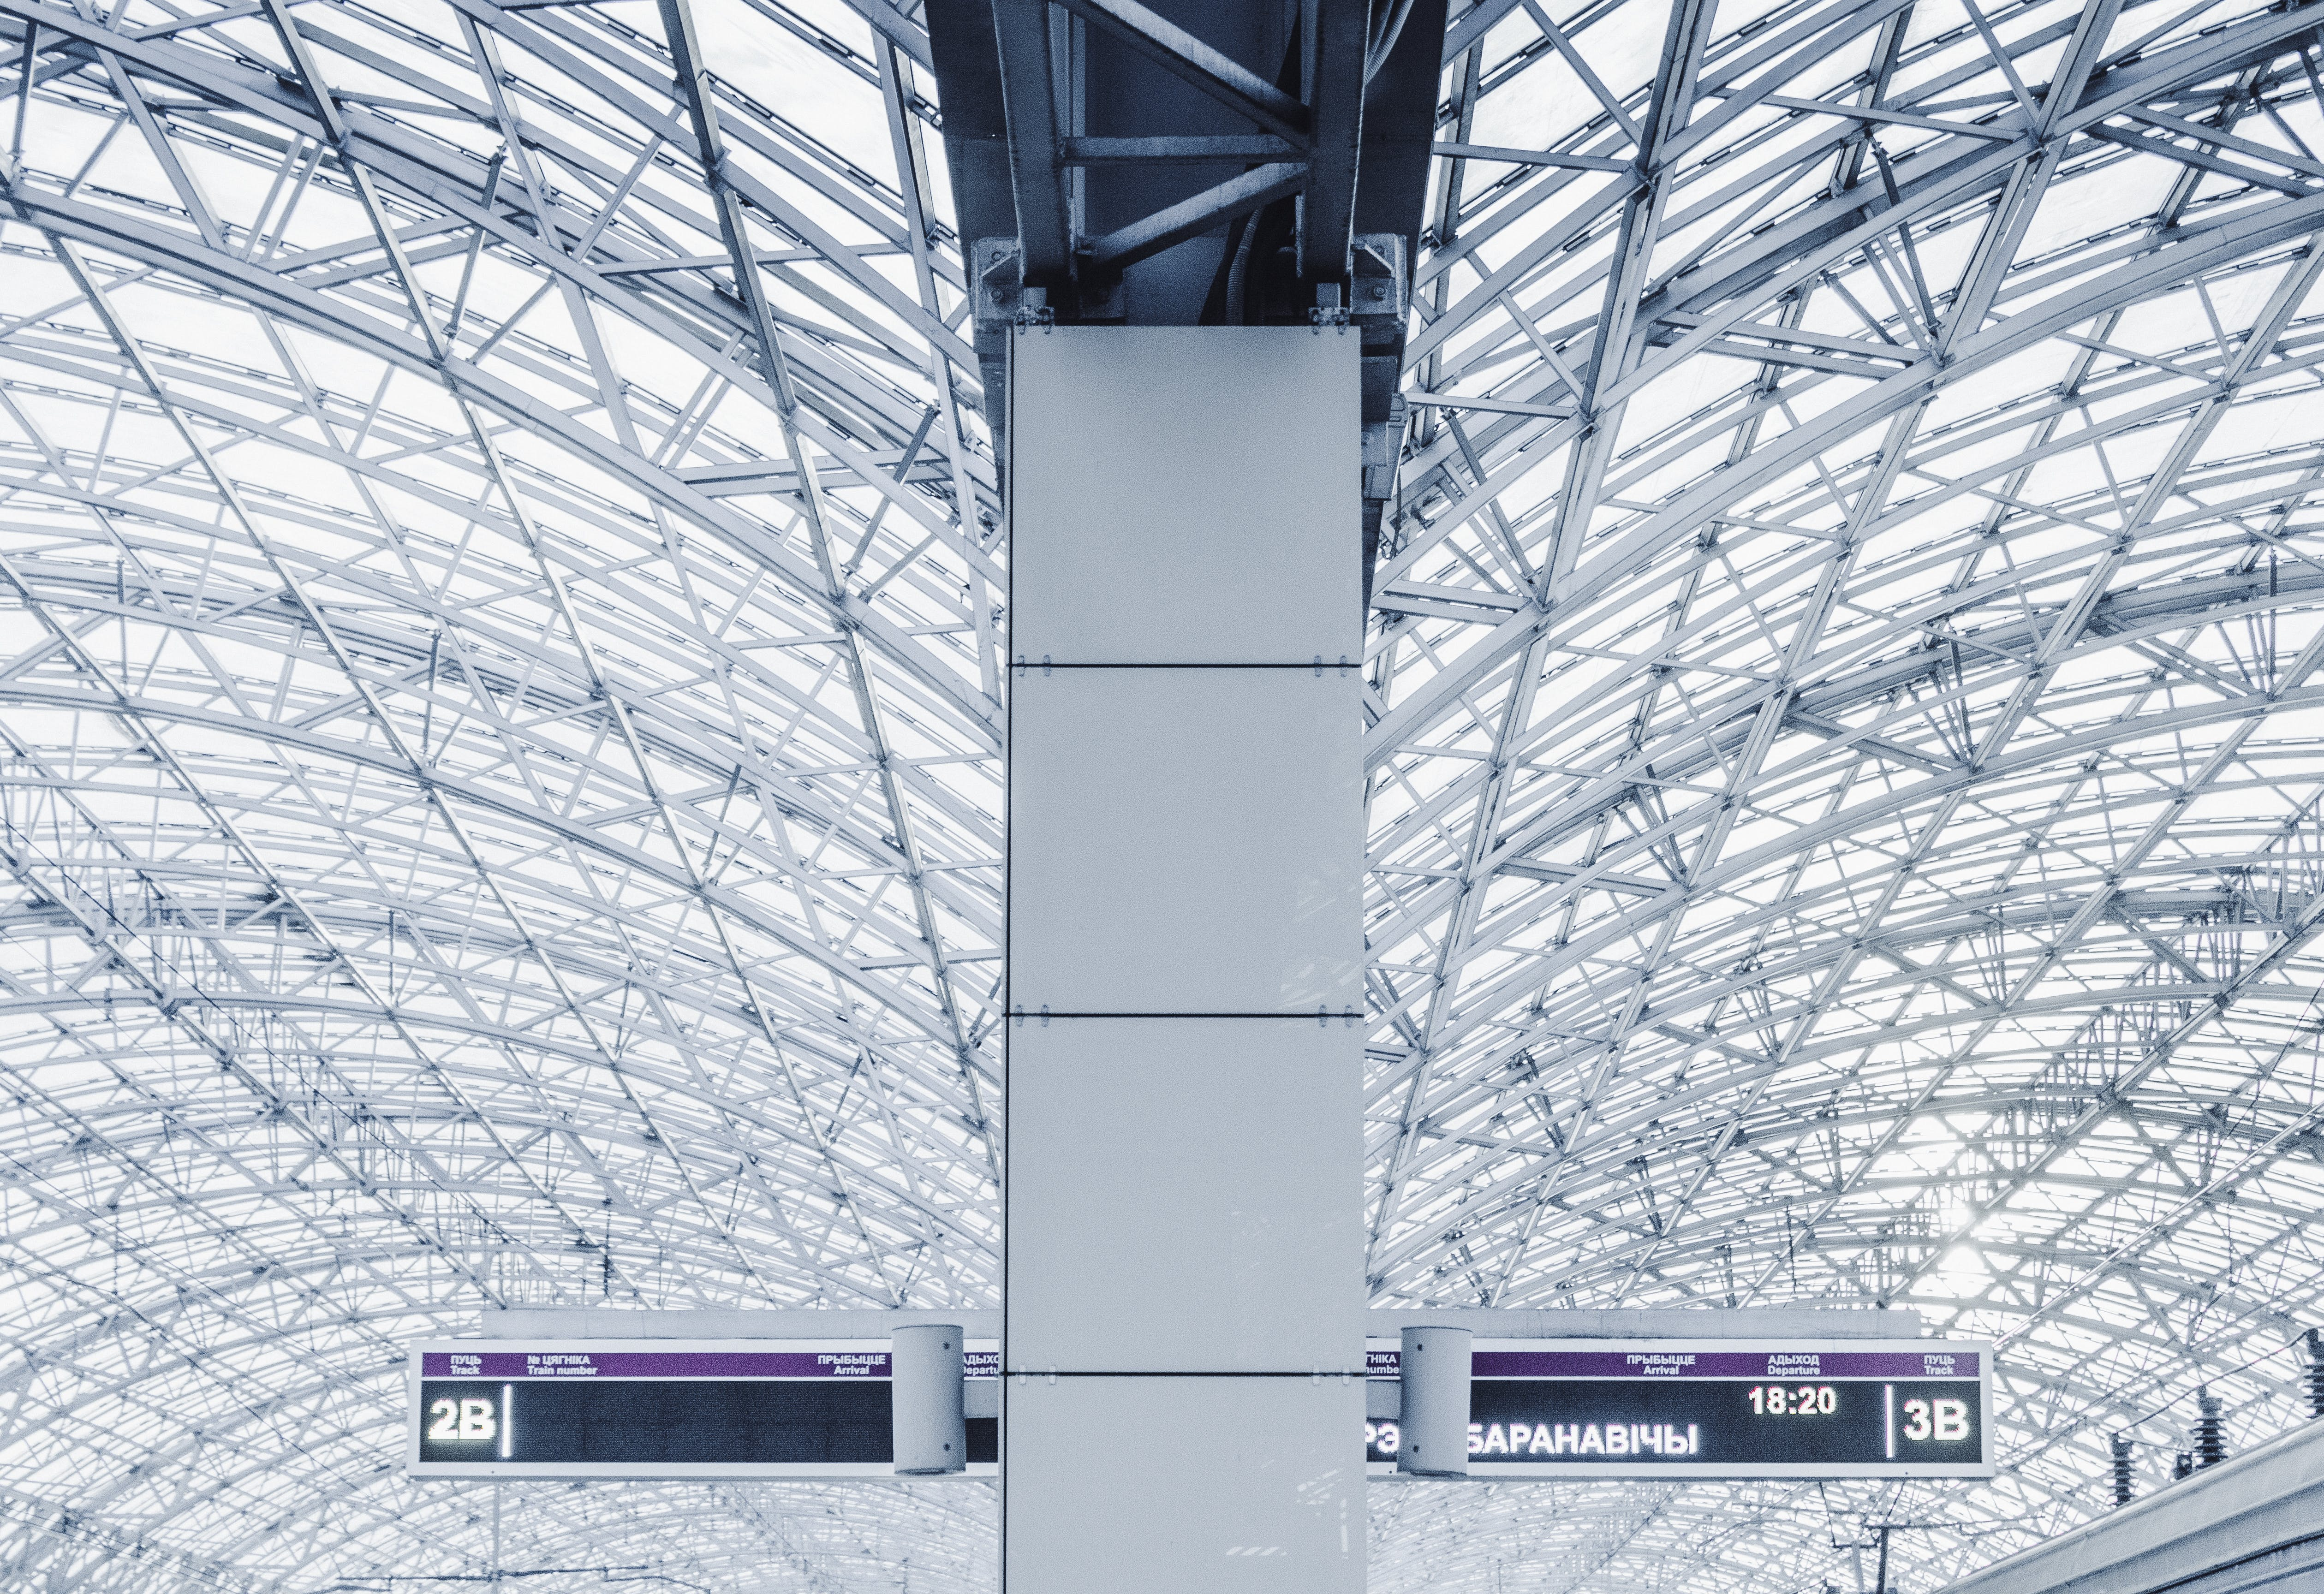 View of Terminal Led Route Signs